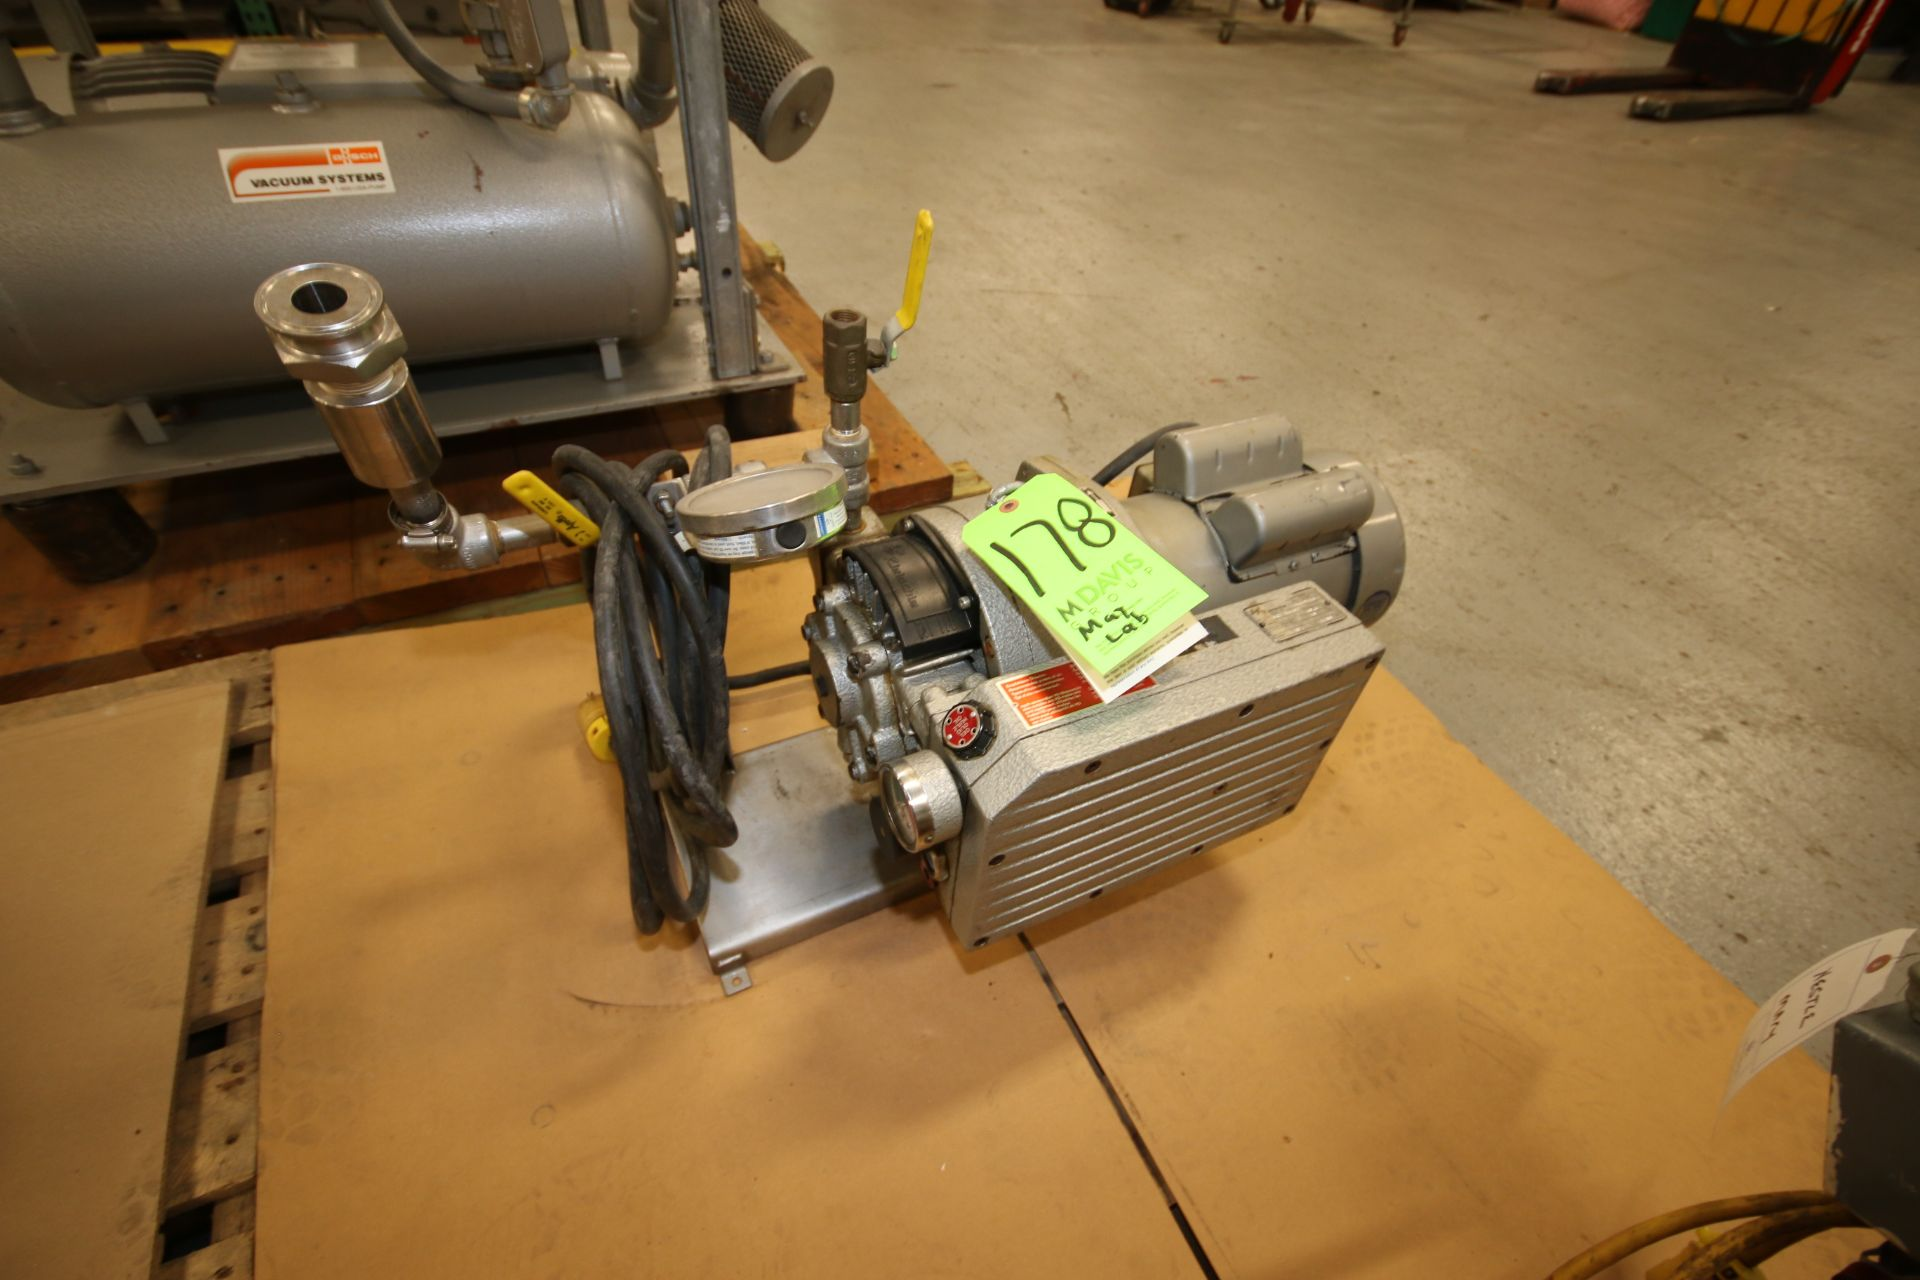 Lot 178 - Rietsche 1.5 hp Vacuum Pump, with Leeson 1740 RPM Motor, Type VCE-15-02, S/N 1619110